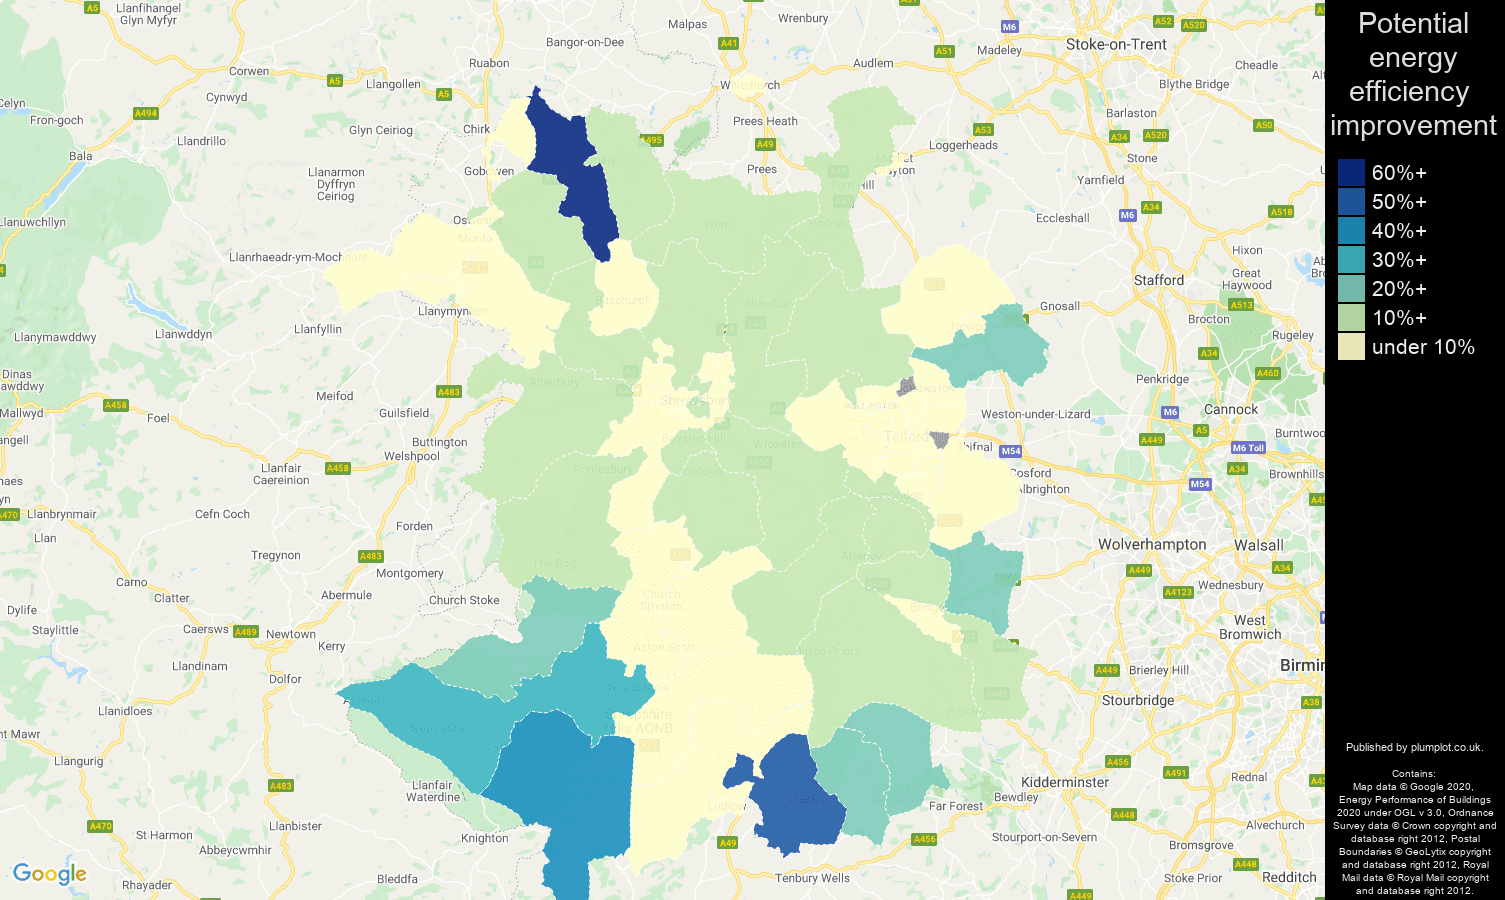 Shropshire map of potential energy efficiency improvement of flats